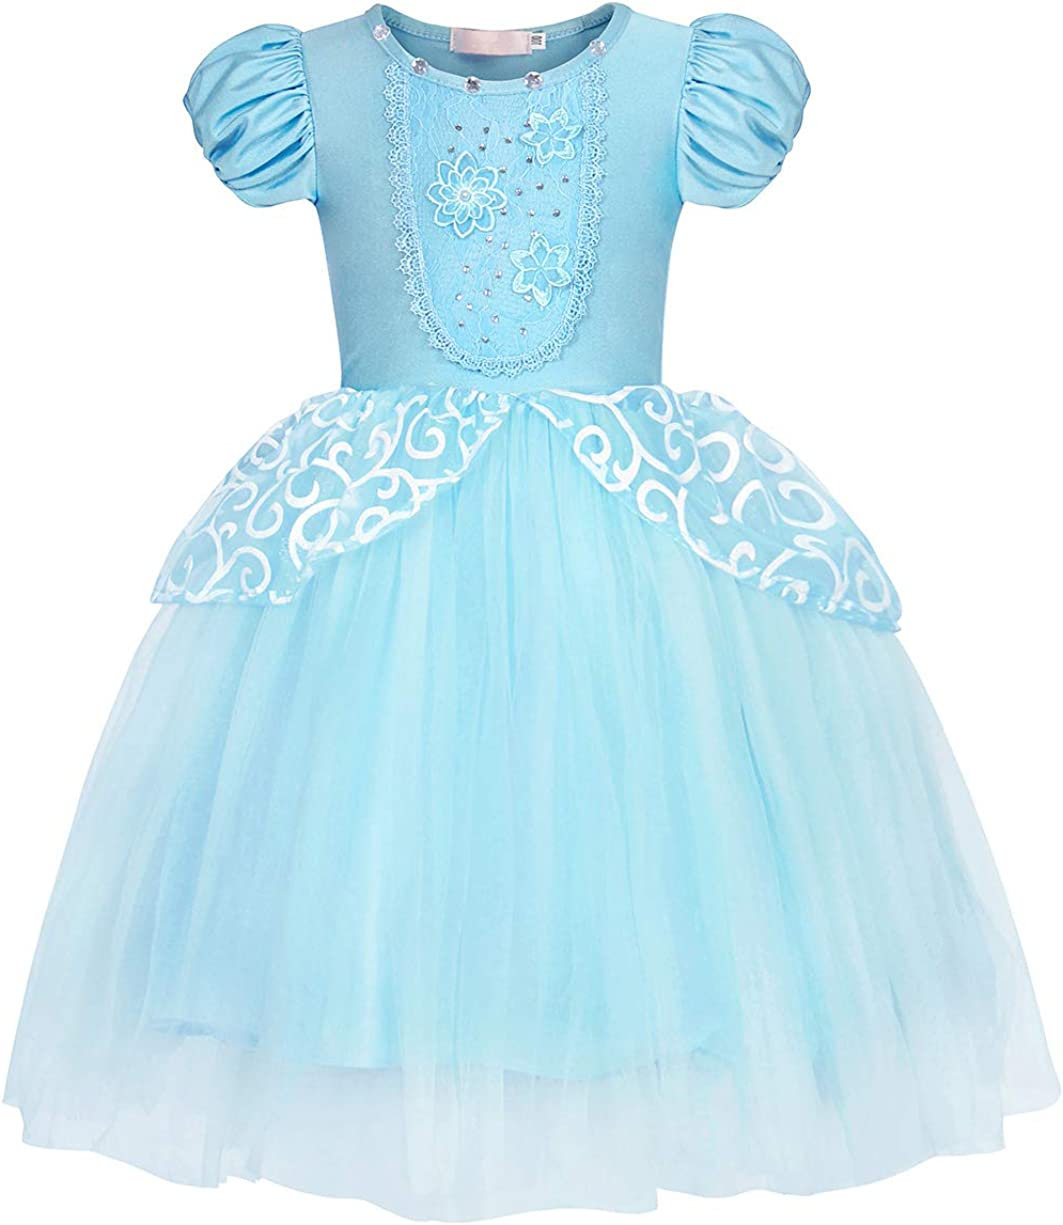 HenzWorld Girls Dresses Costume Outfits Princess Birthday Party Cosplay Tutu Skirt Blue Little Kids 2-12 Years